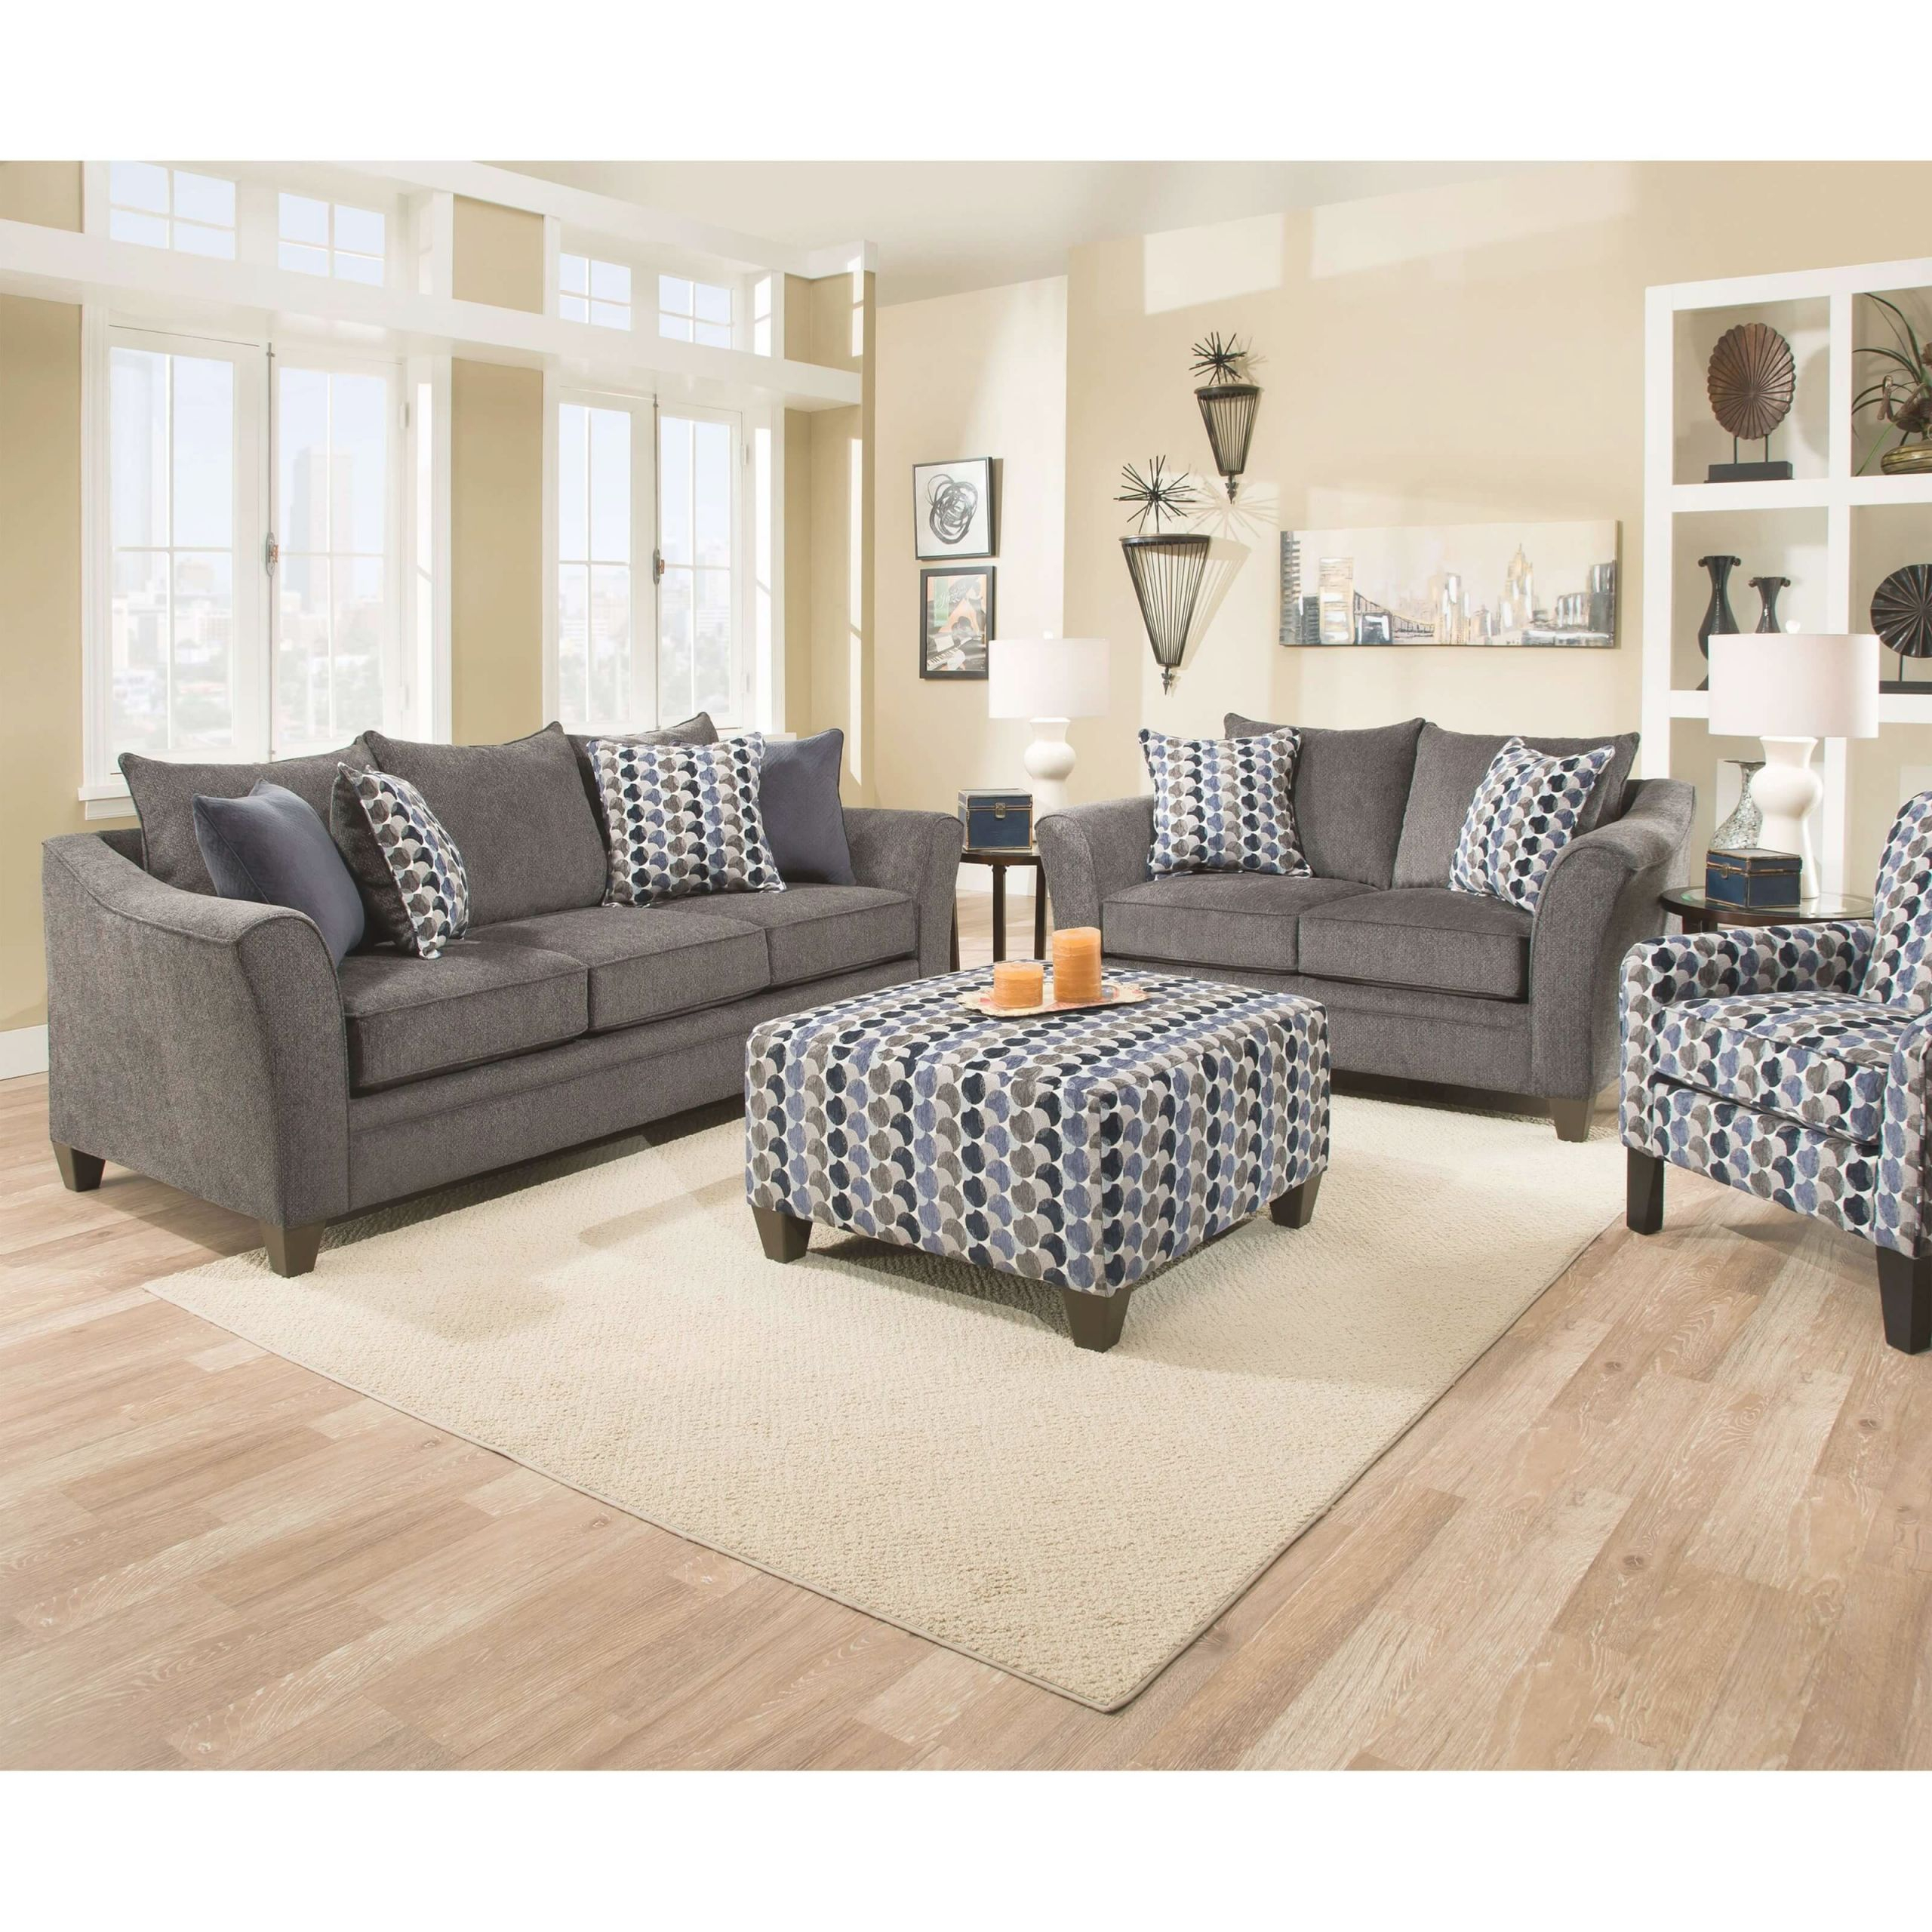 6485 Albany Slate Sofa And Loveseatsimmons with New Simmons Living Room Furniture